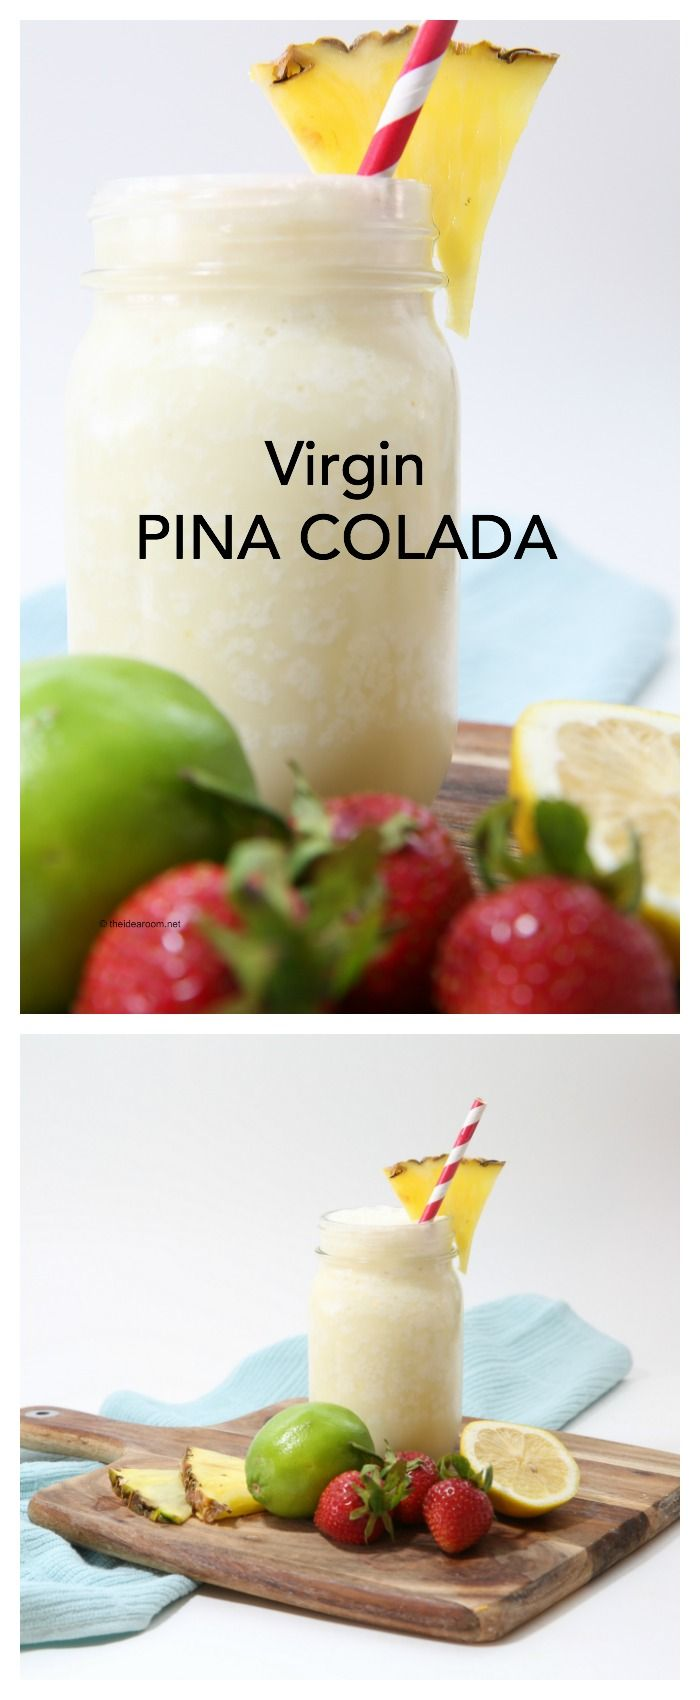 Recipes-Drinks/Beverages| virgin-pina-colada